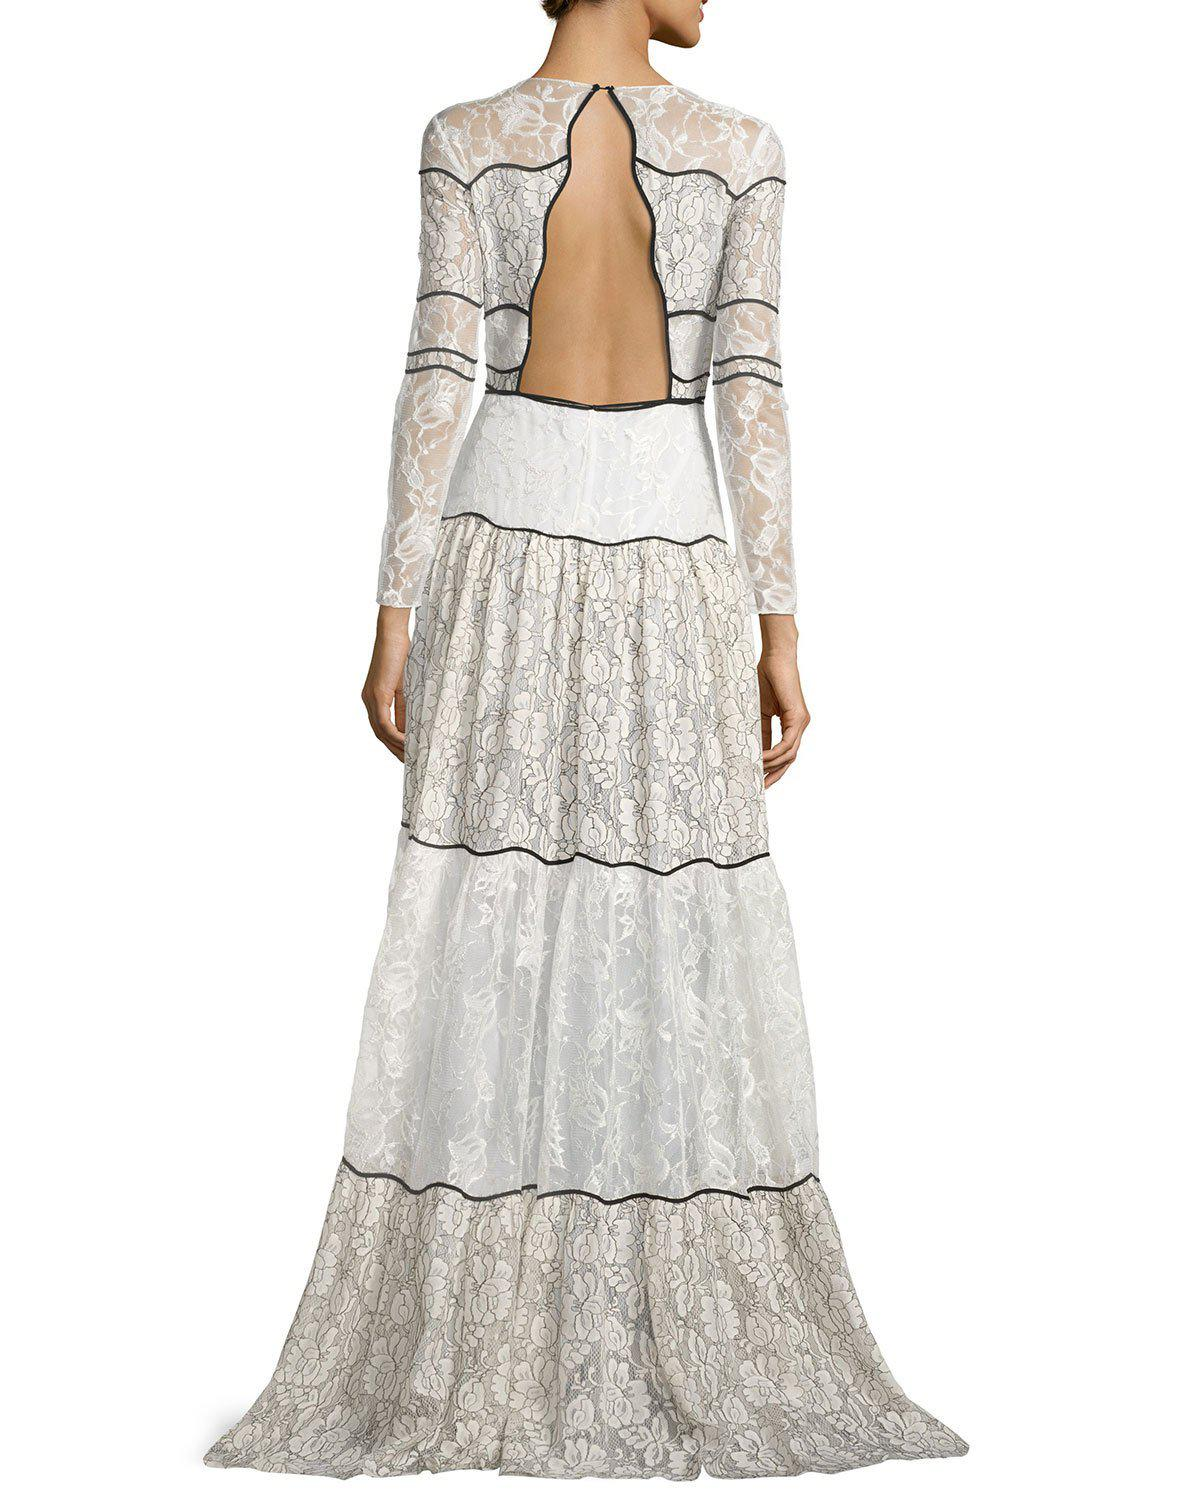 Lyst - Sachin & Babi Sara Long-sleeve Paneled Lace Gown in White